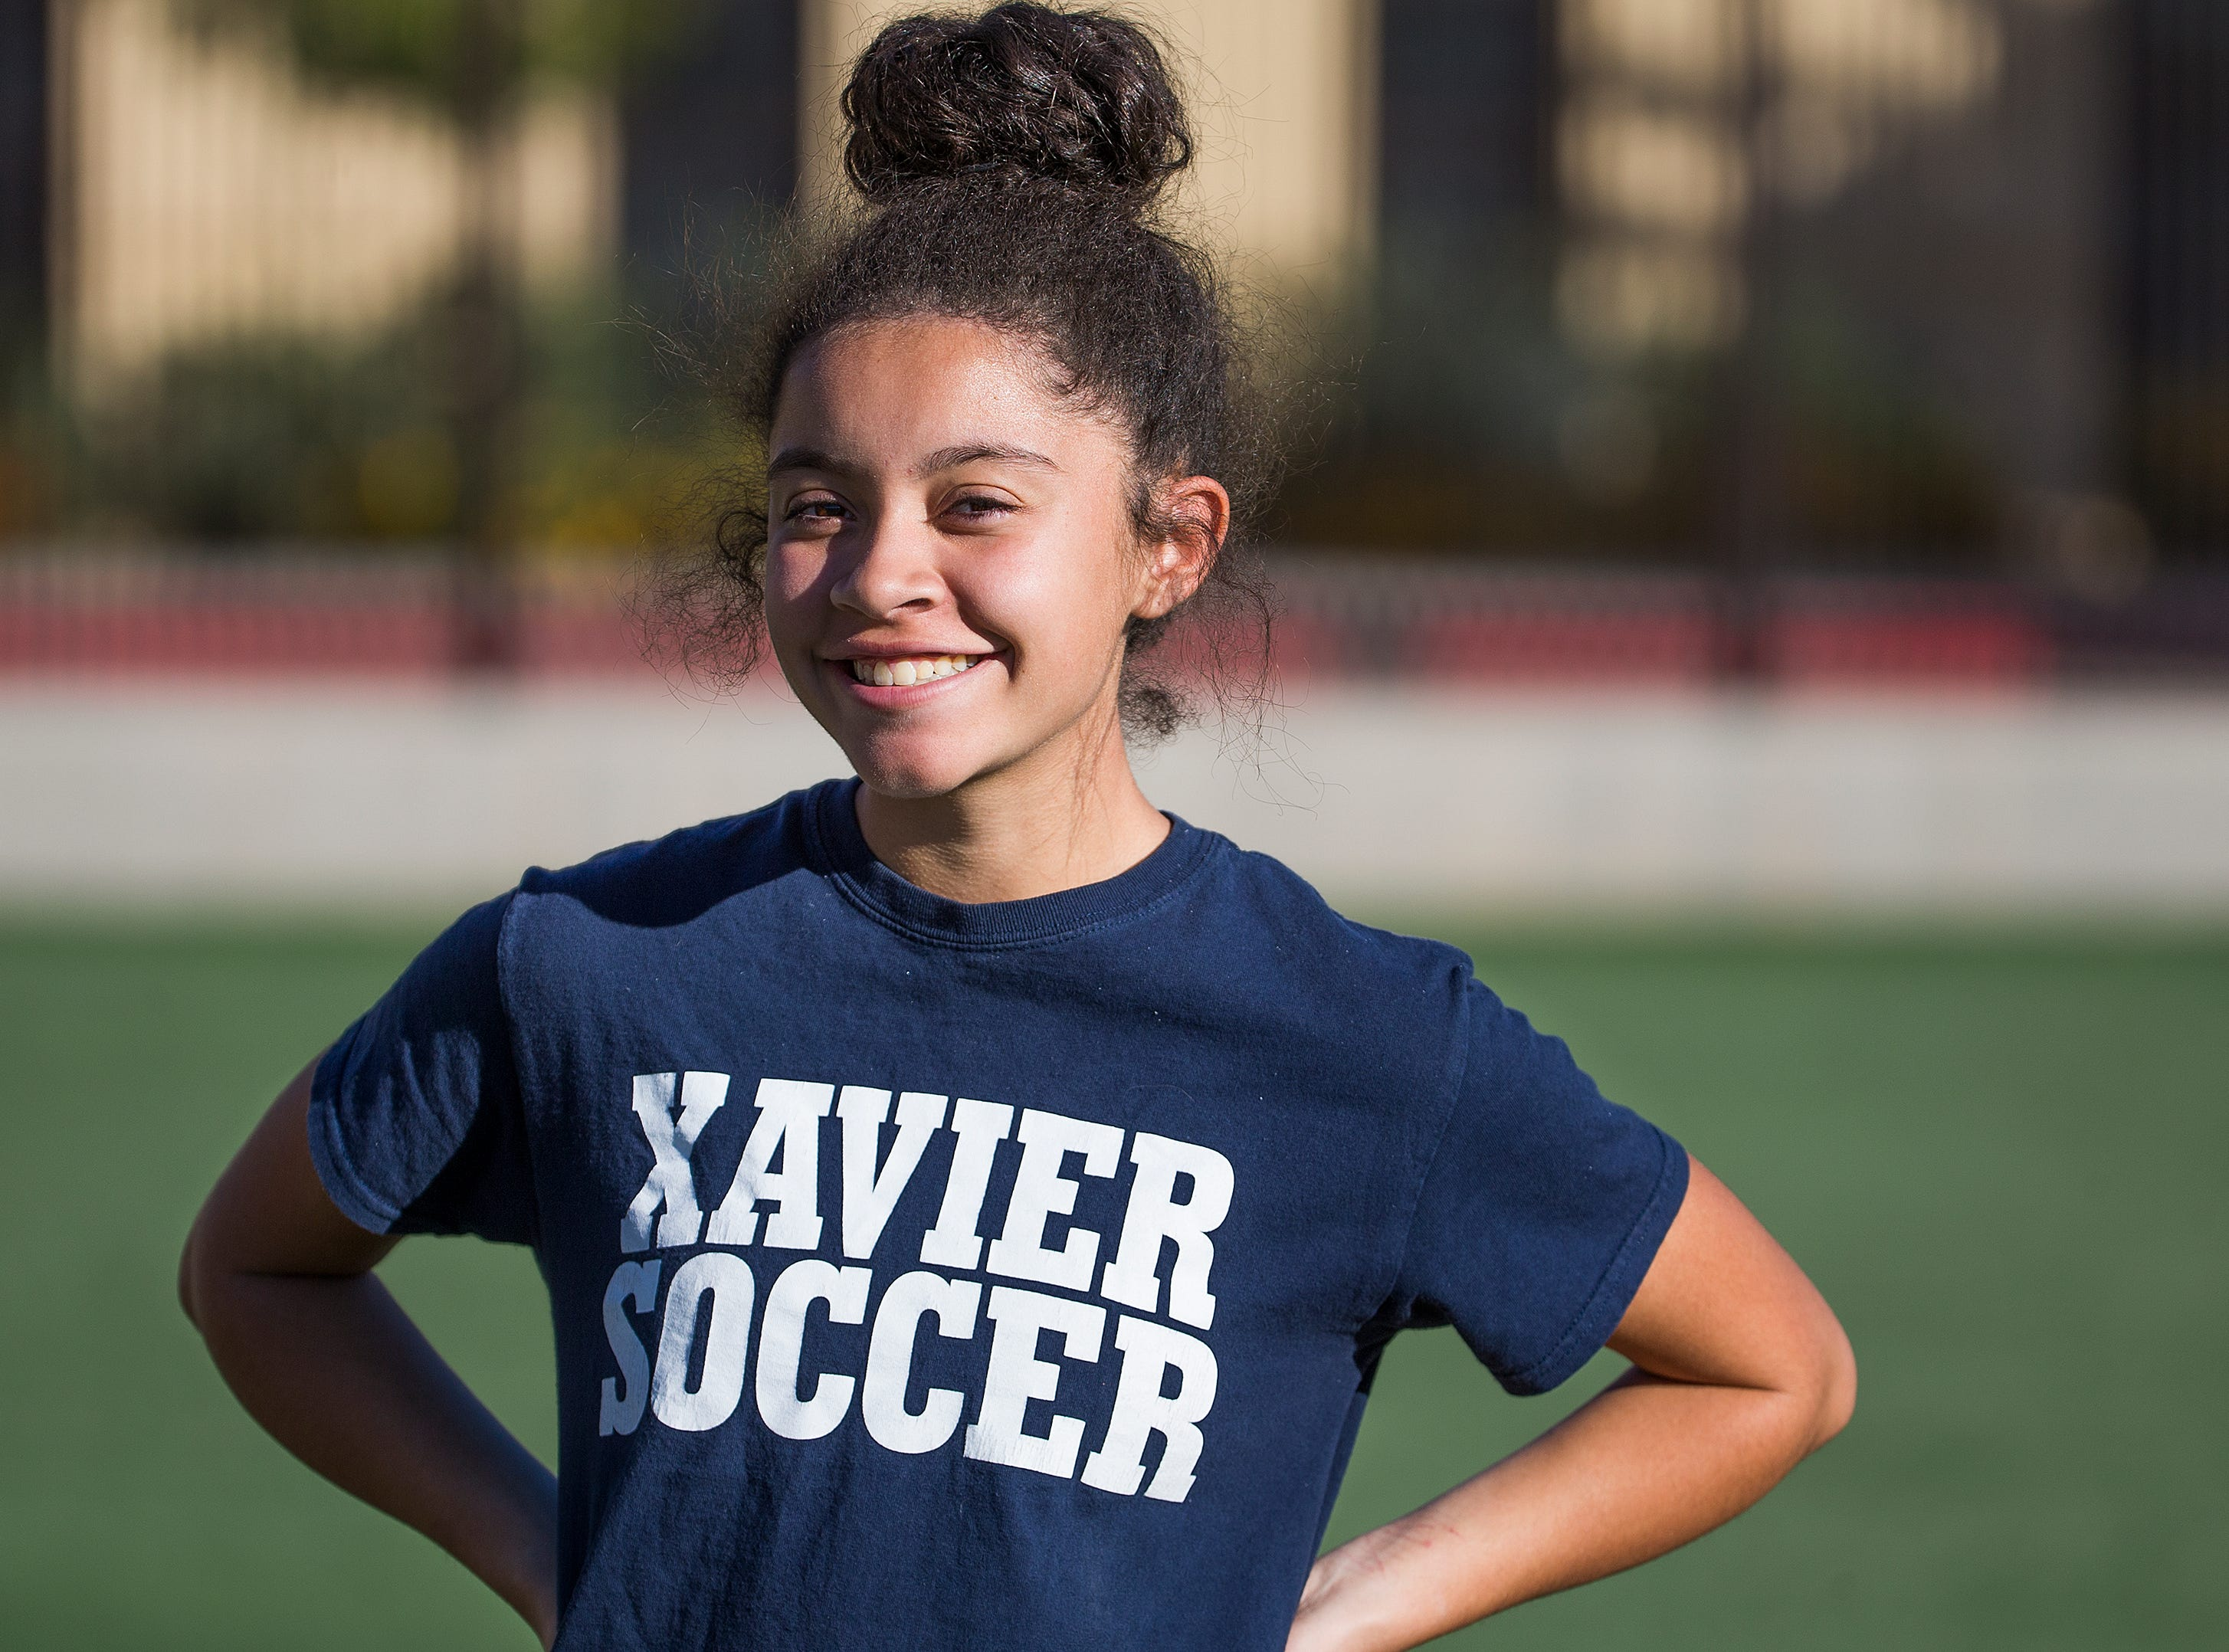 Xavier College Preparatory soccer player Caitlin Johnston takes a break during practice at the school, Tuesday, November 13, 2018.